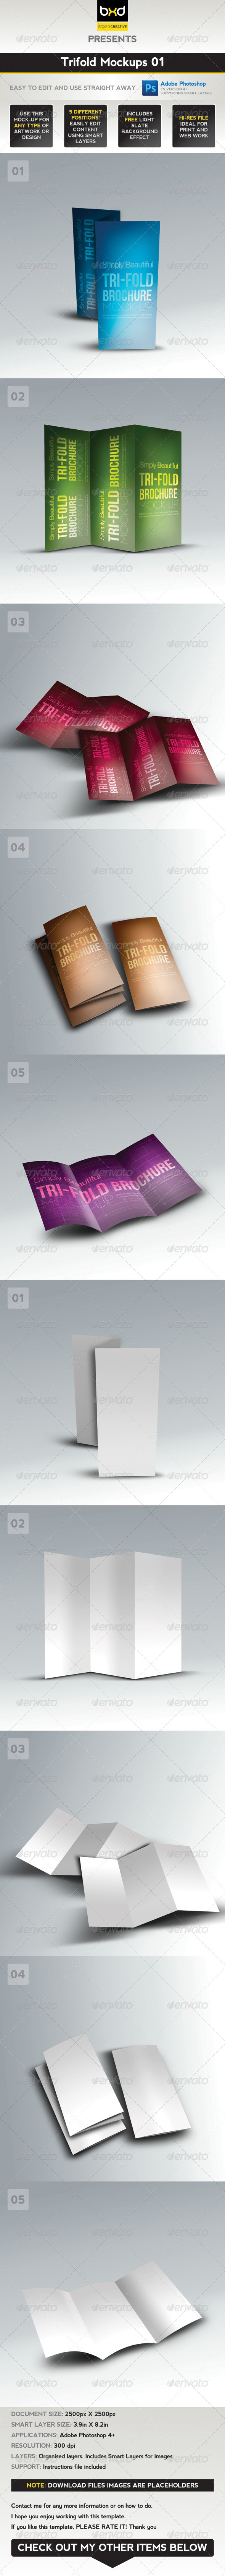 GraphicRiver Trifold Brochure Mock-ups 01 2439846